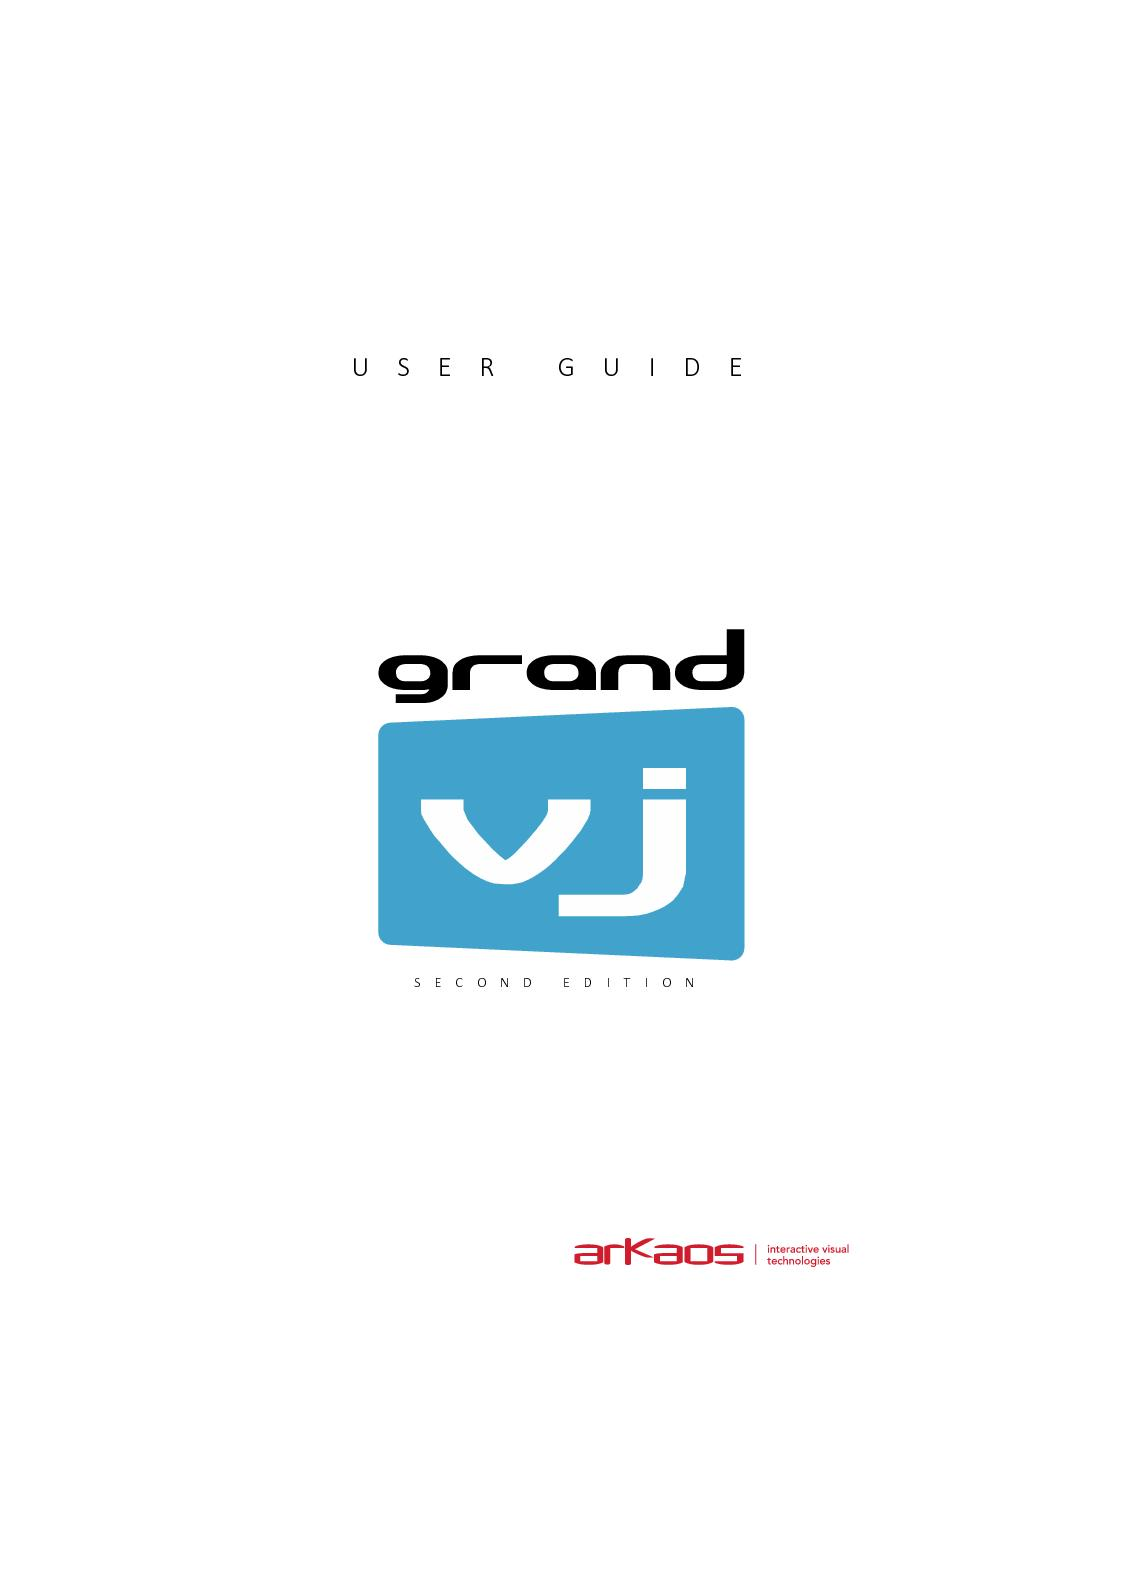 arkaos grandvj 1.2 2 keygen download